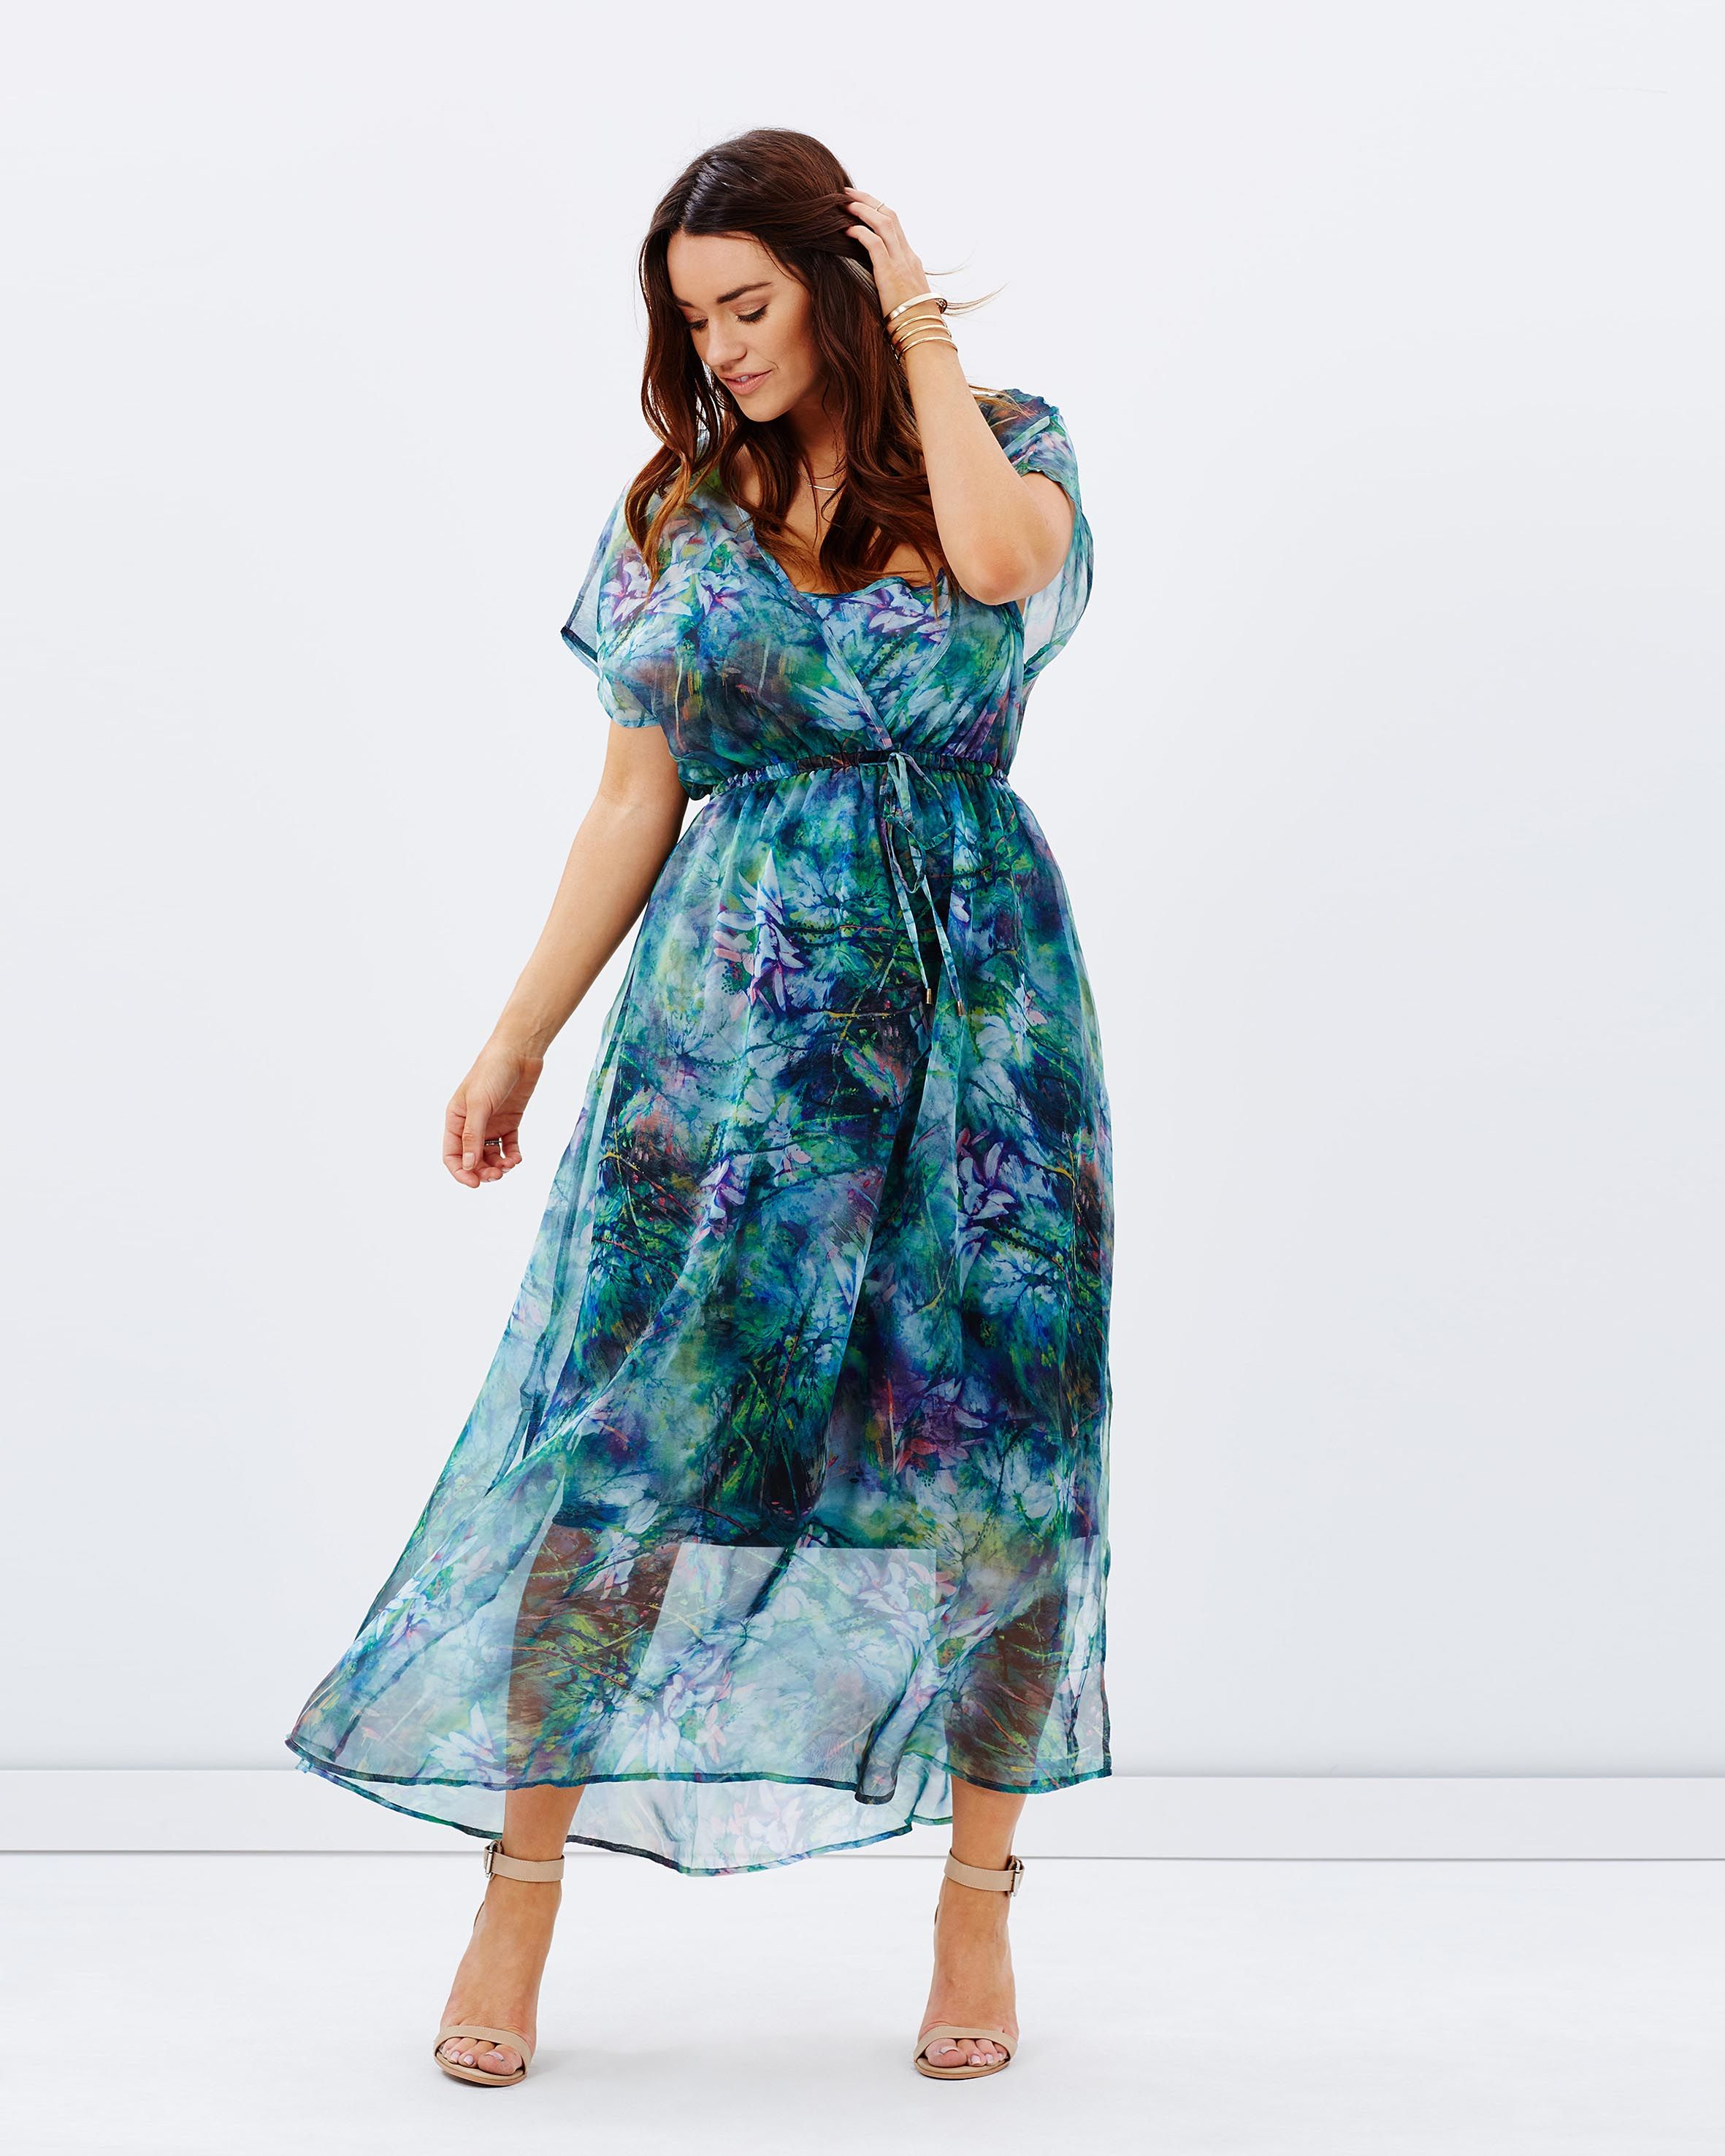 Plus size formal evening dresses australia